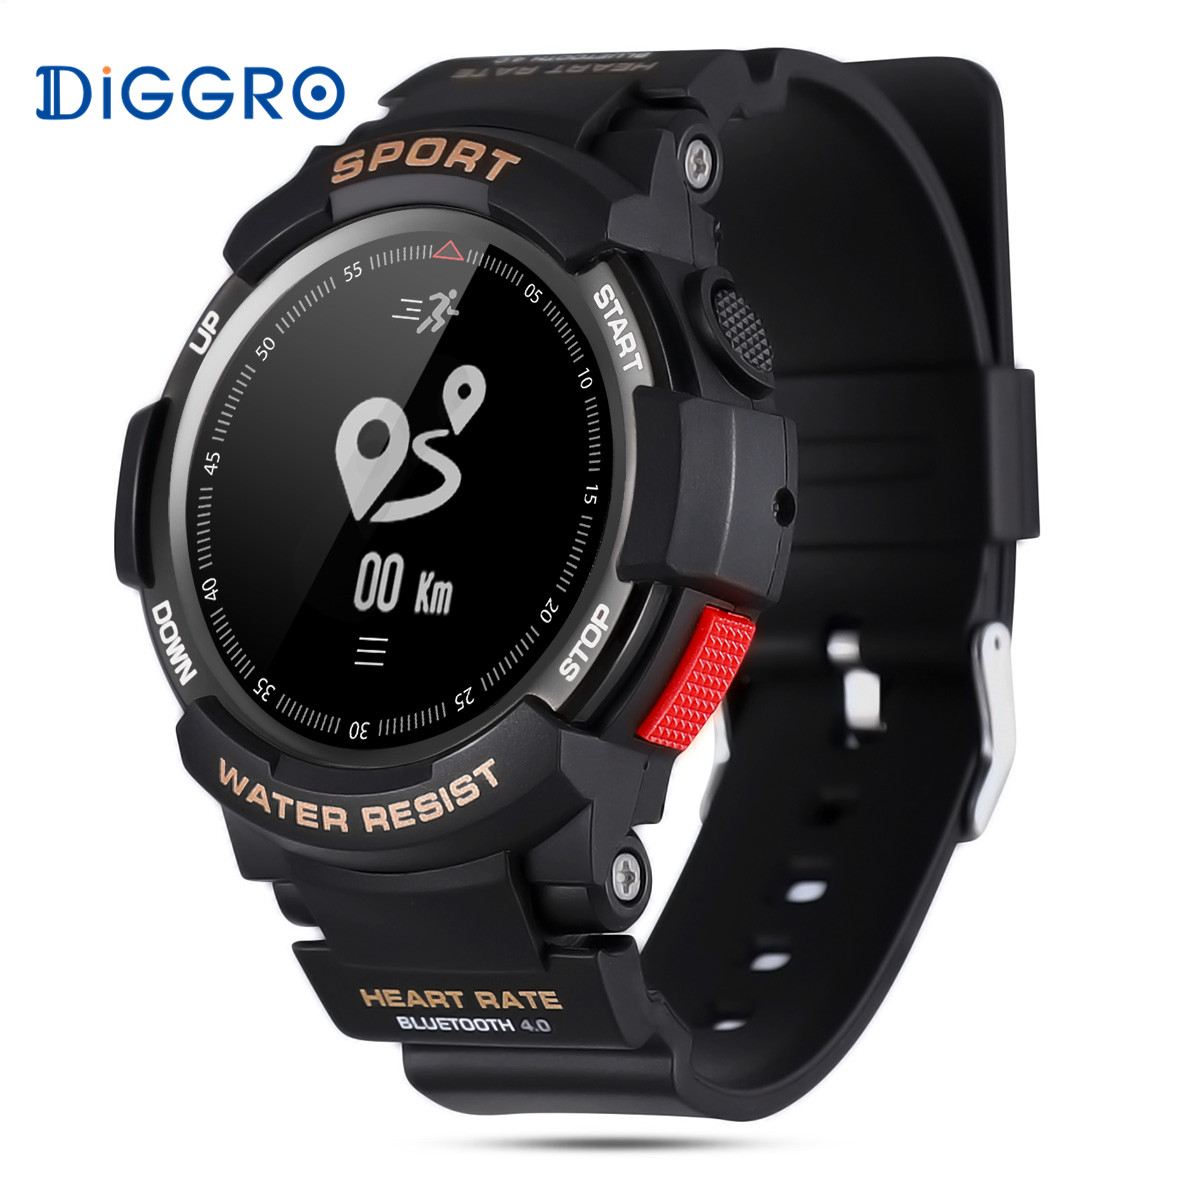 Diggro DI09 Heart Rate IP68 Professional Waterproof Sleeping Monitor Call Message Reminder Remote Smart Watch For IOS Android